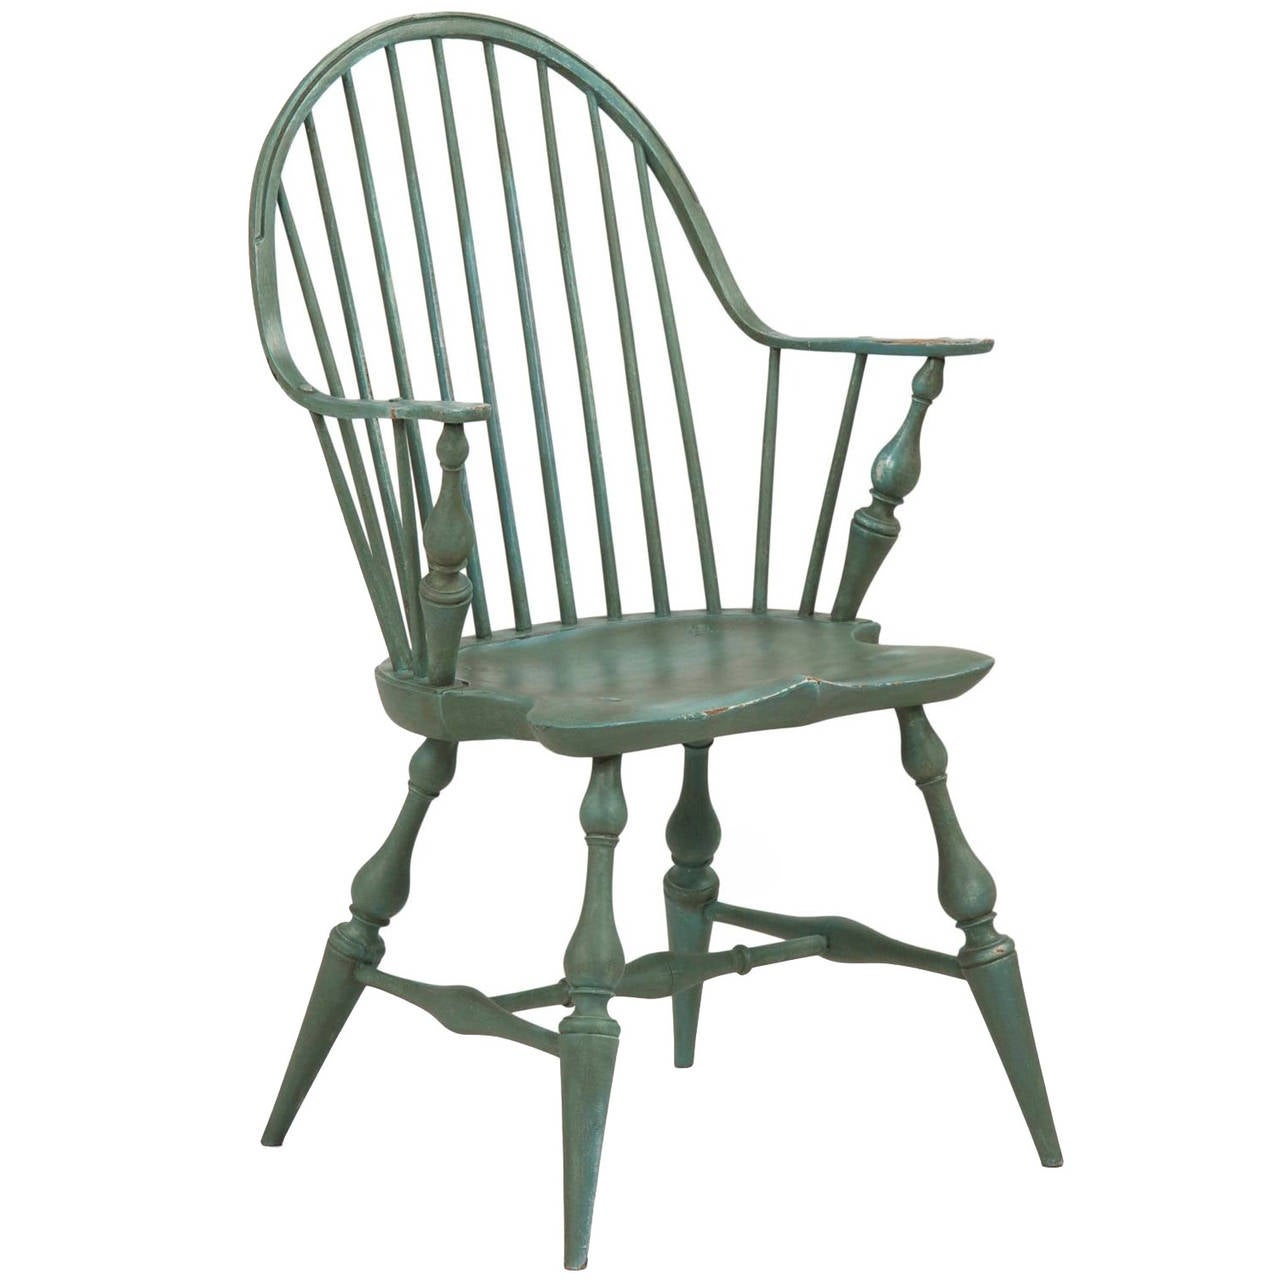 American windsor chair - American Continuous Arm Windsor Style Chair 20th Century 1